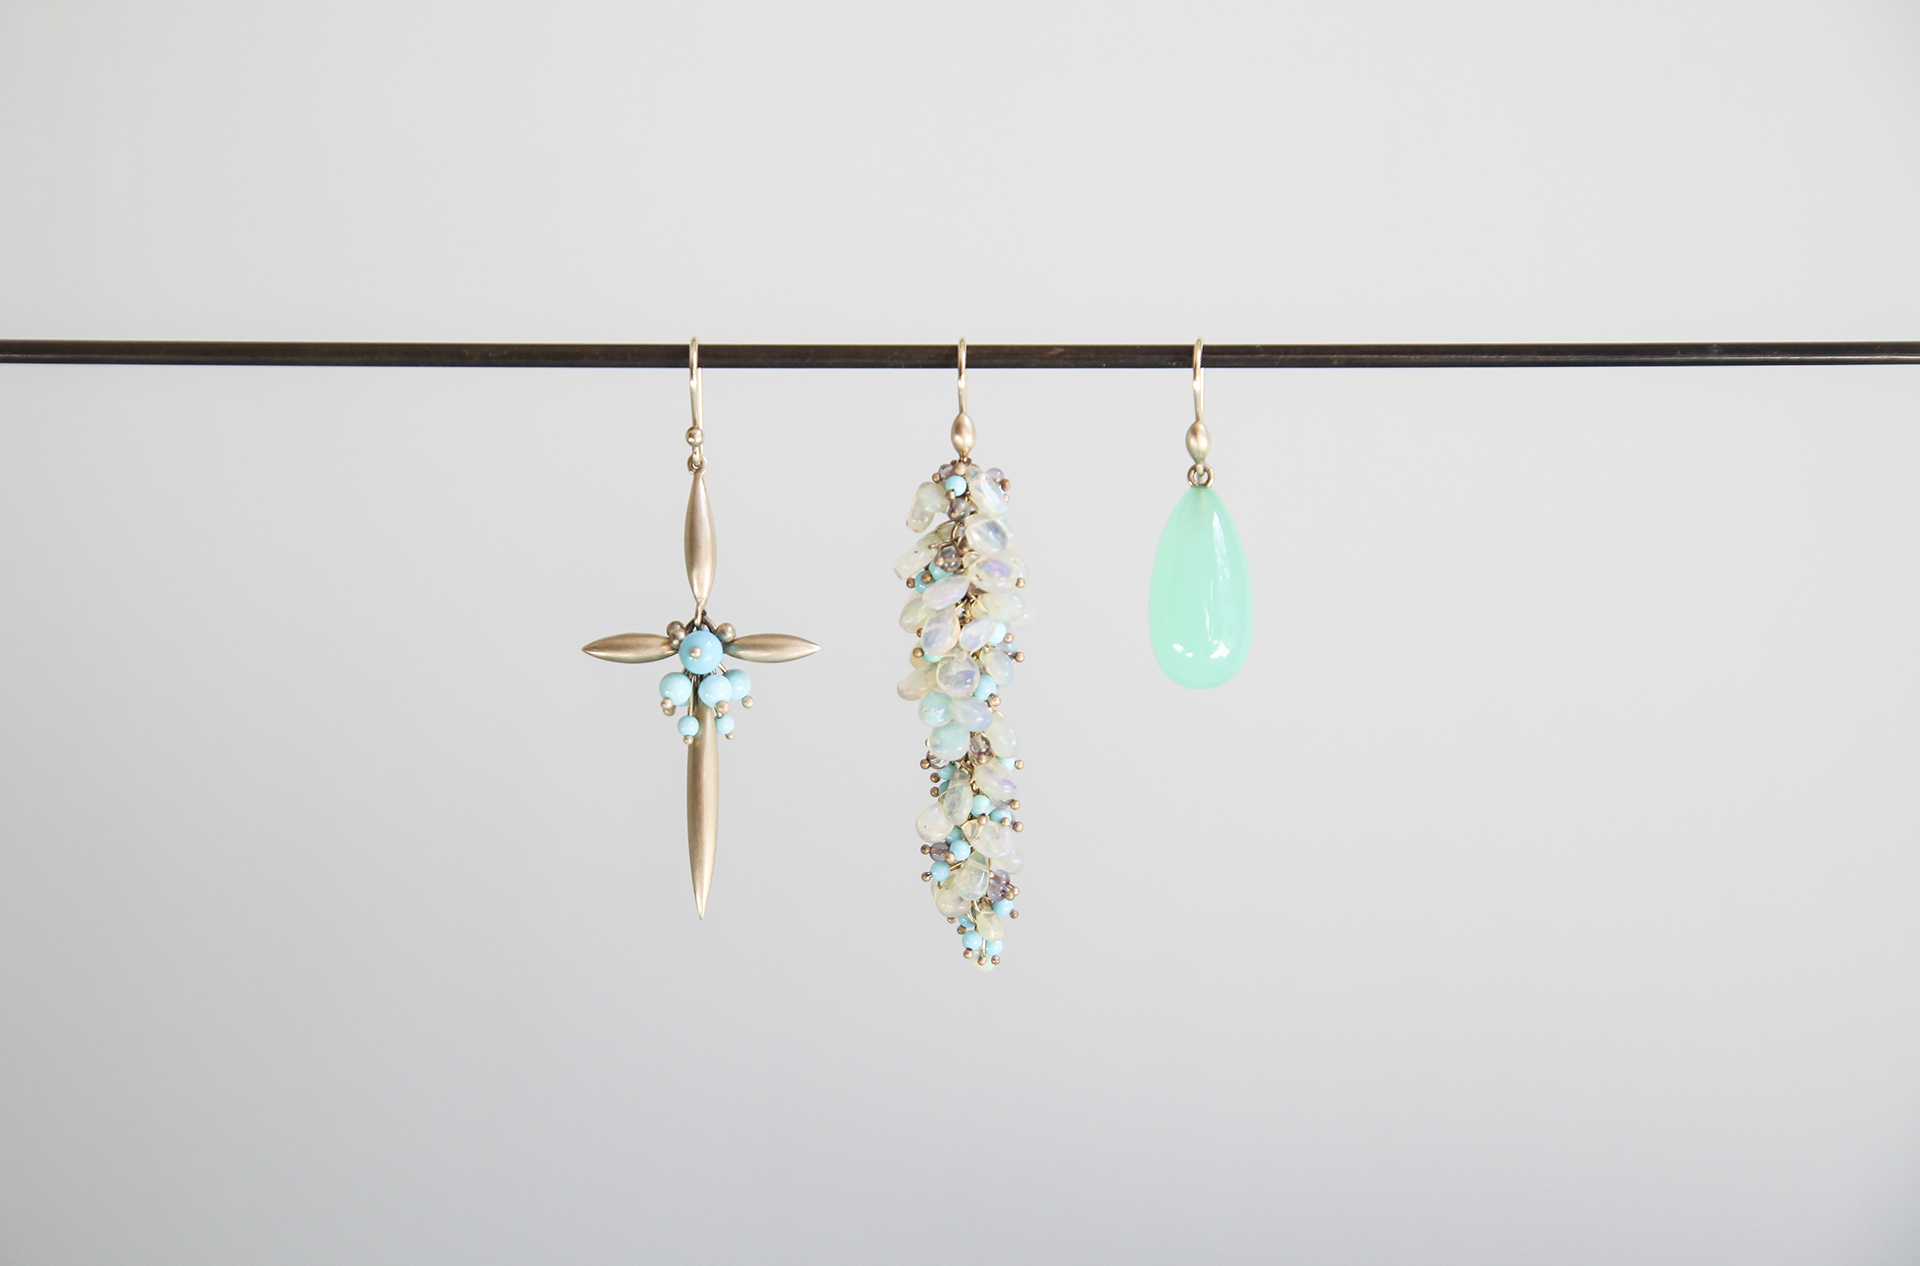 10ky Gold New Cross Earring with Sleeping Beauty Turquoise, Ethiopian Opal, Labradorite and Sleeping Beauty Turquoise Pussywillow Earrings, Handcut Chrysophrase Earrings.